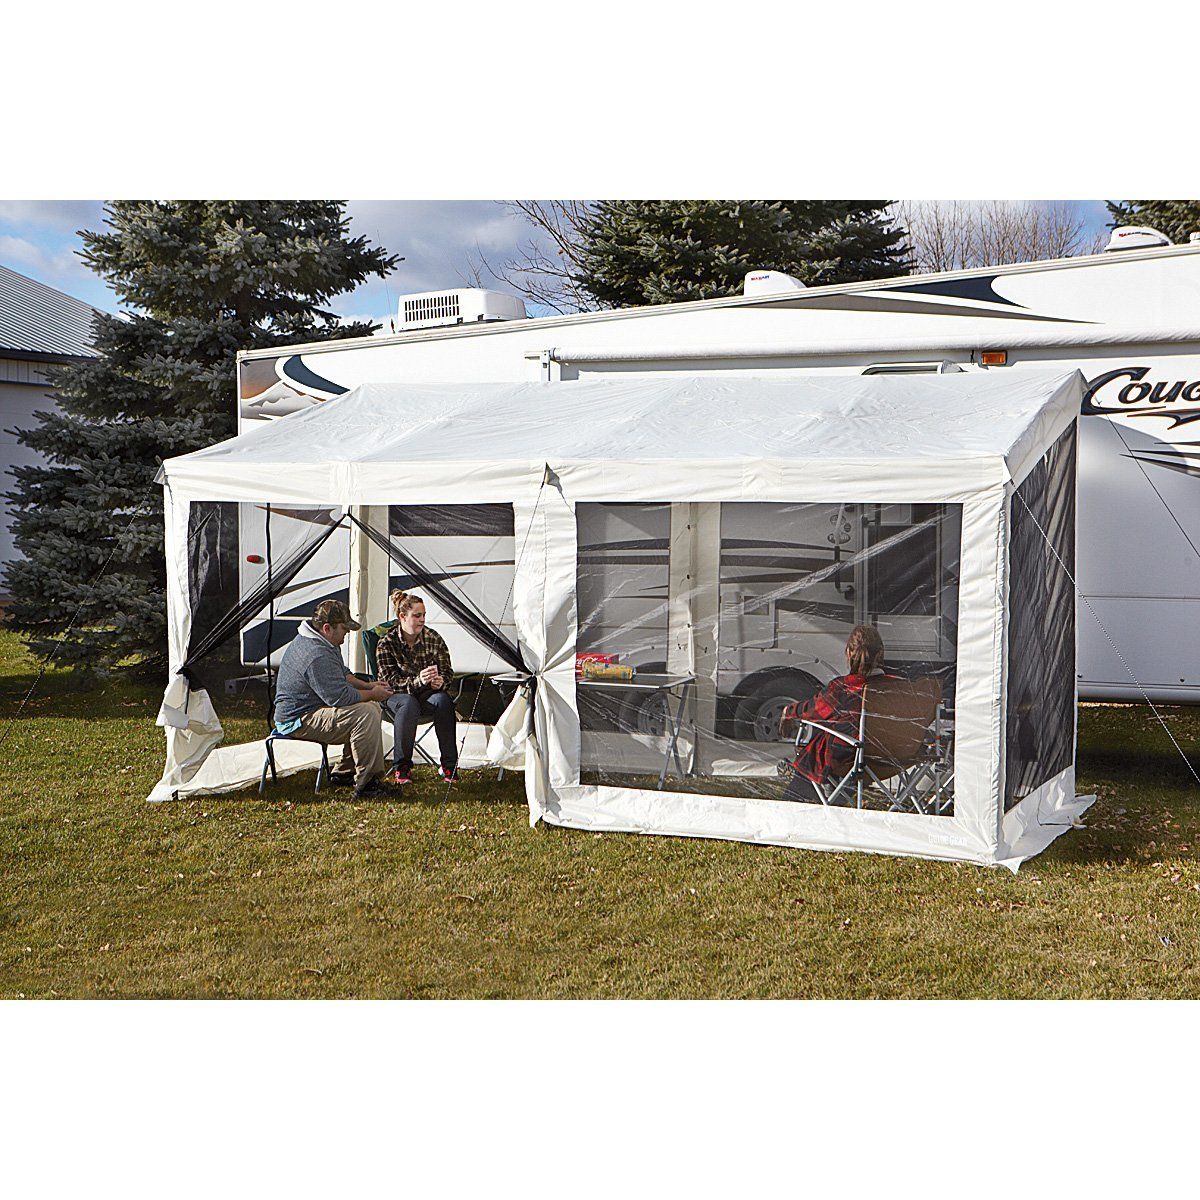 Camper Trailer Setup Instructions With Lastest Trend In